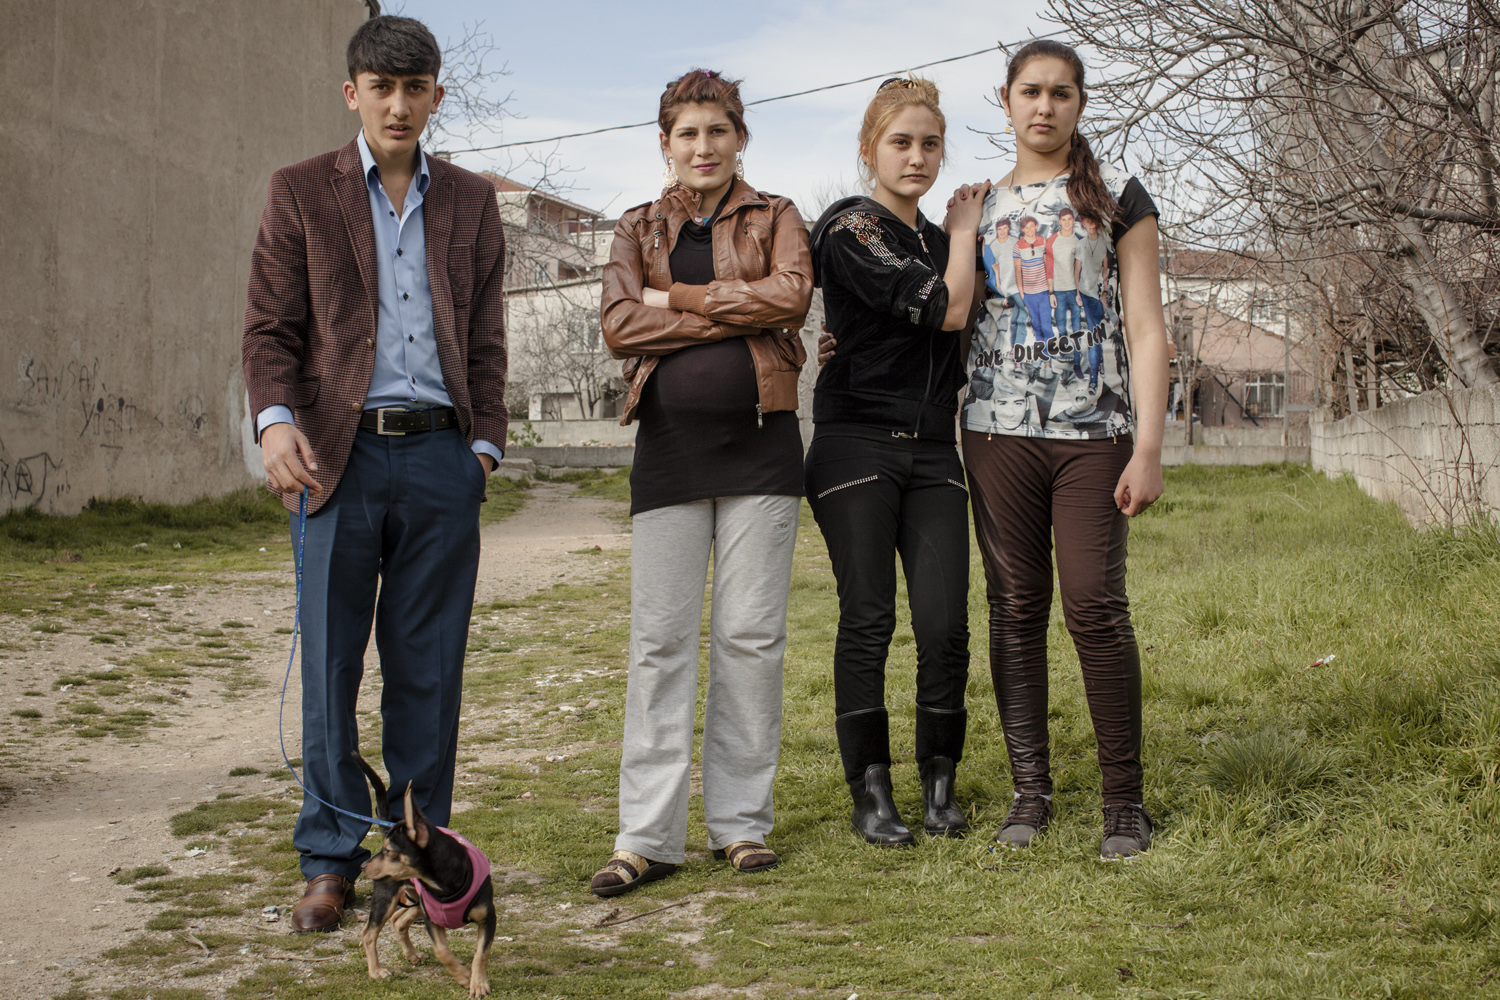 Residents of the Kartal suburb watch filming in progress, March 2013.